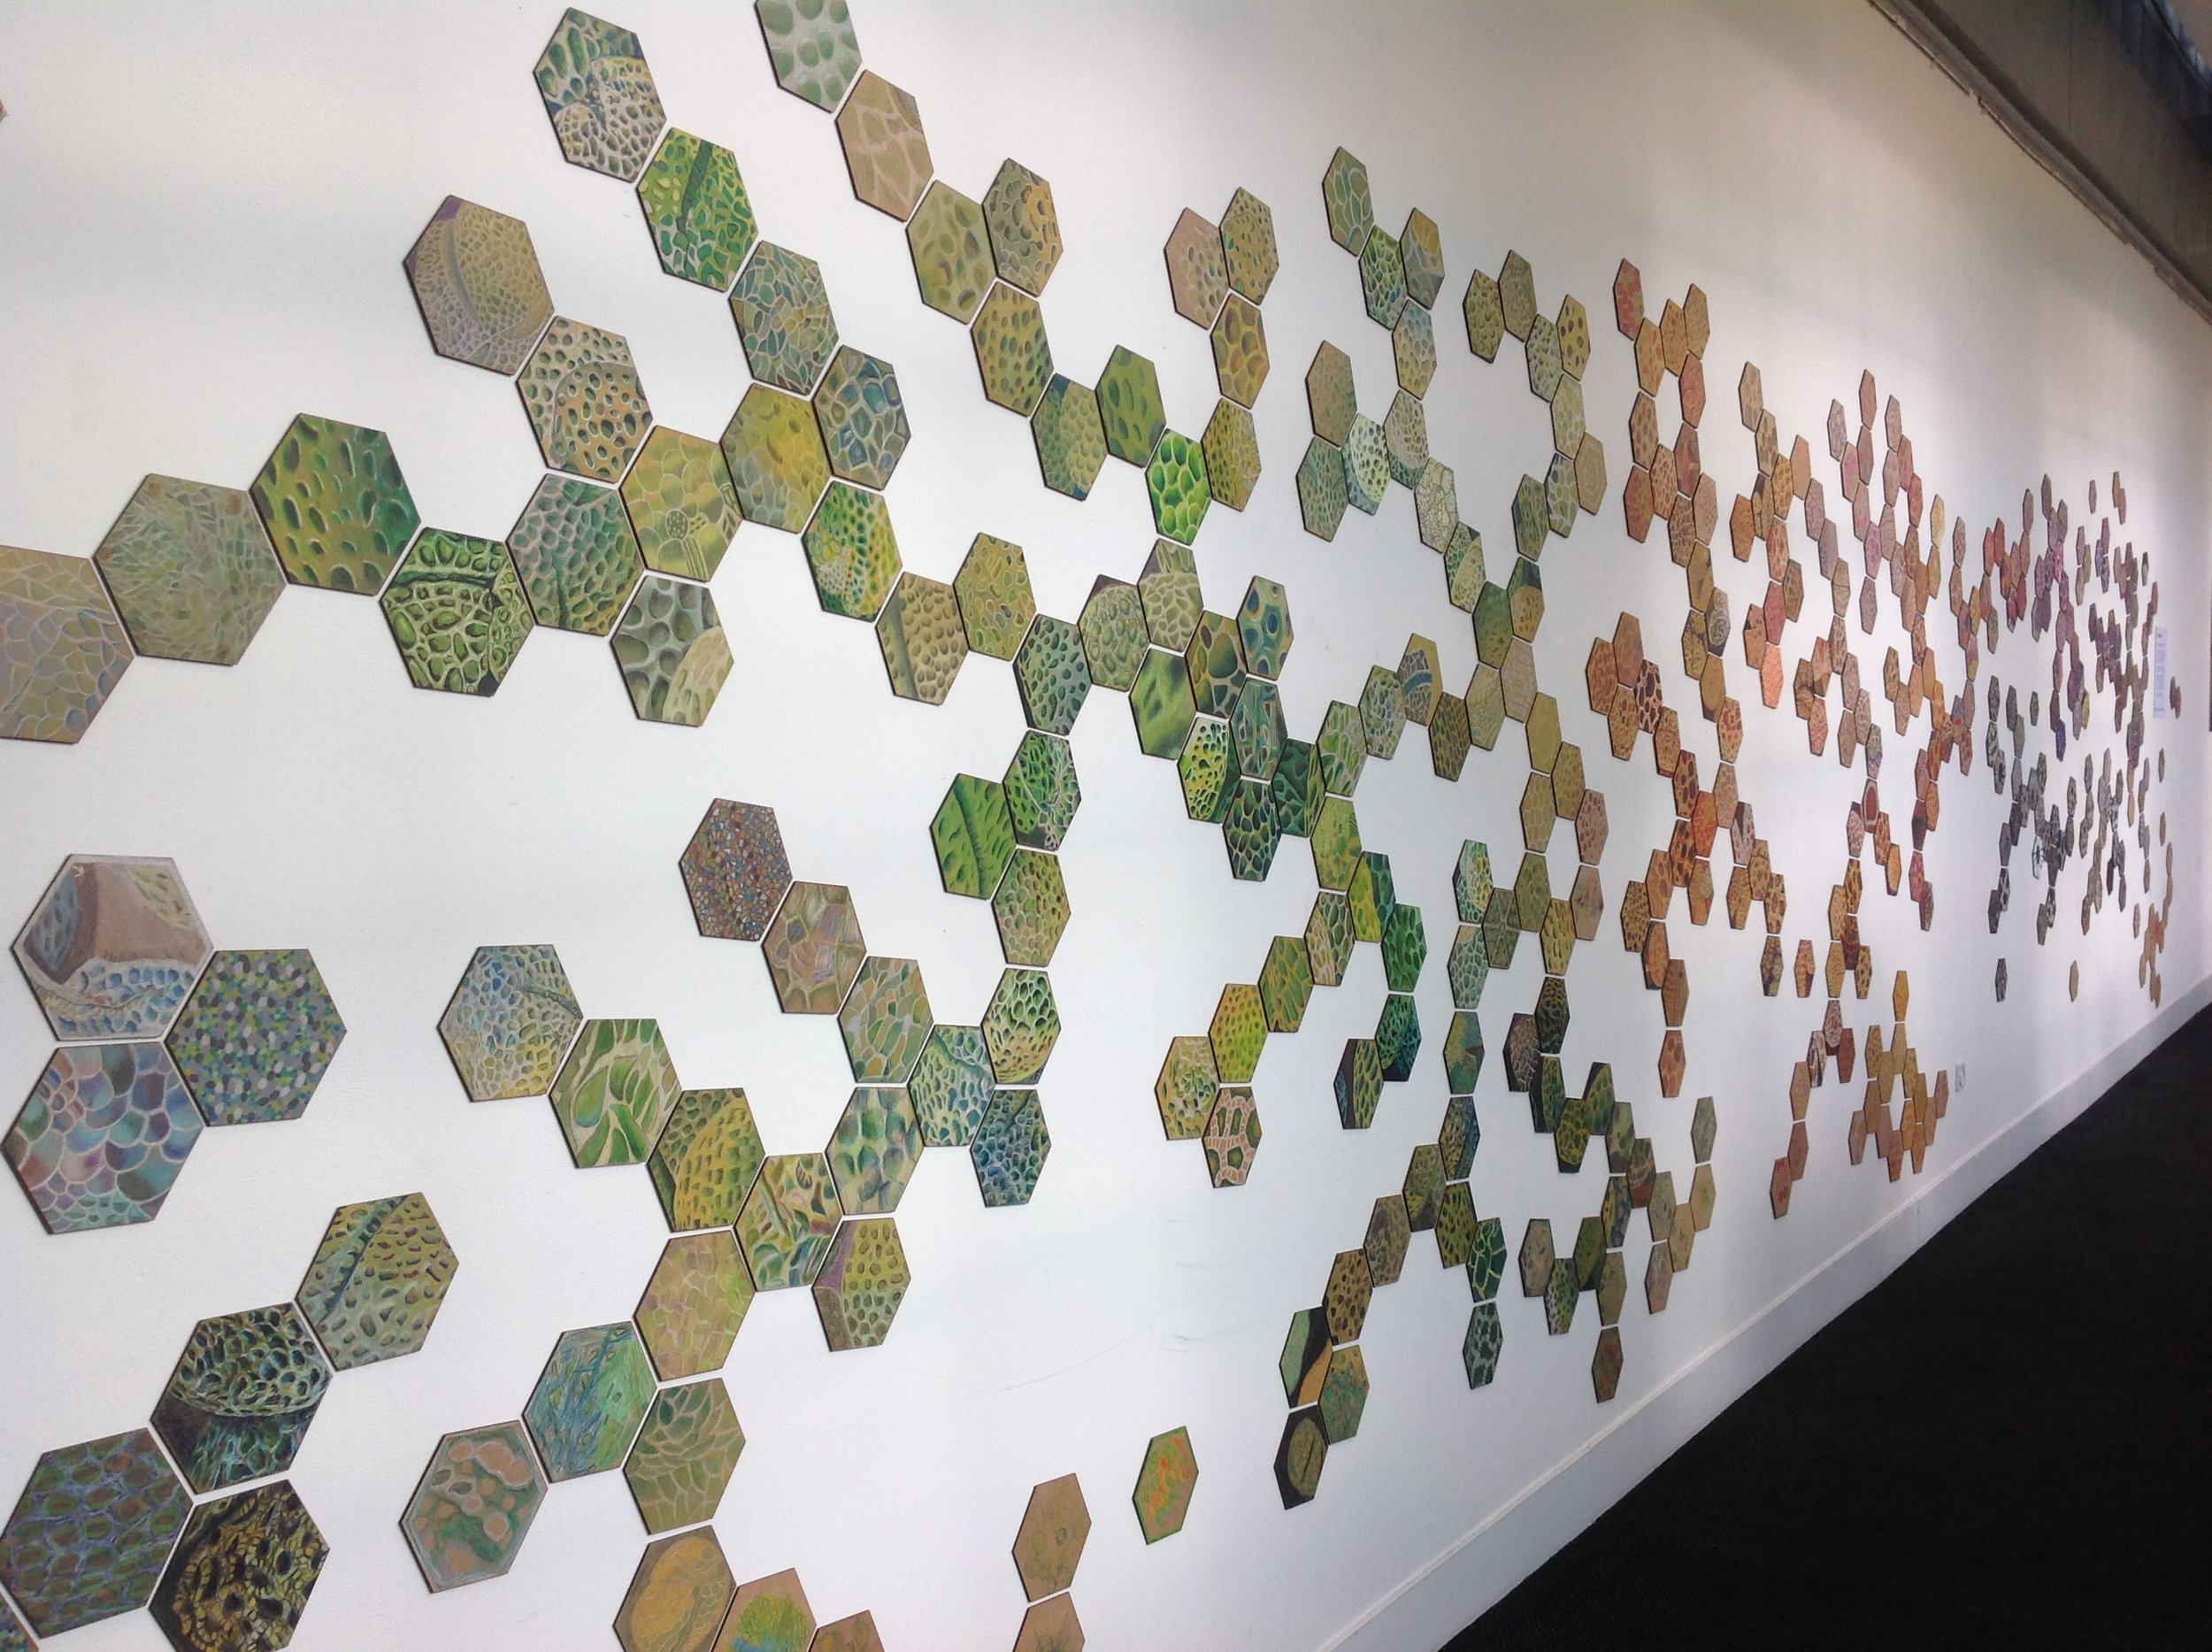 PolliNation - City Screen, YorkFebruary 8th - March 6th 2019